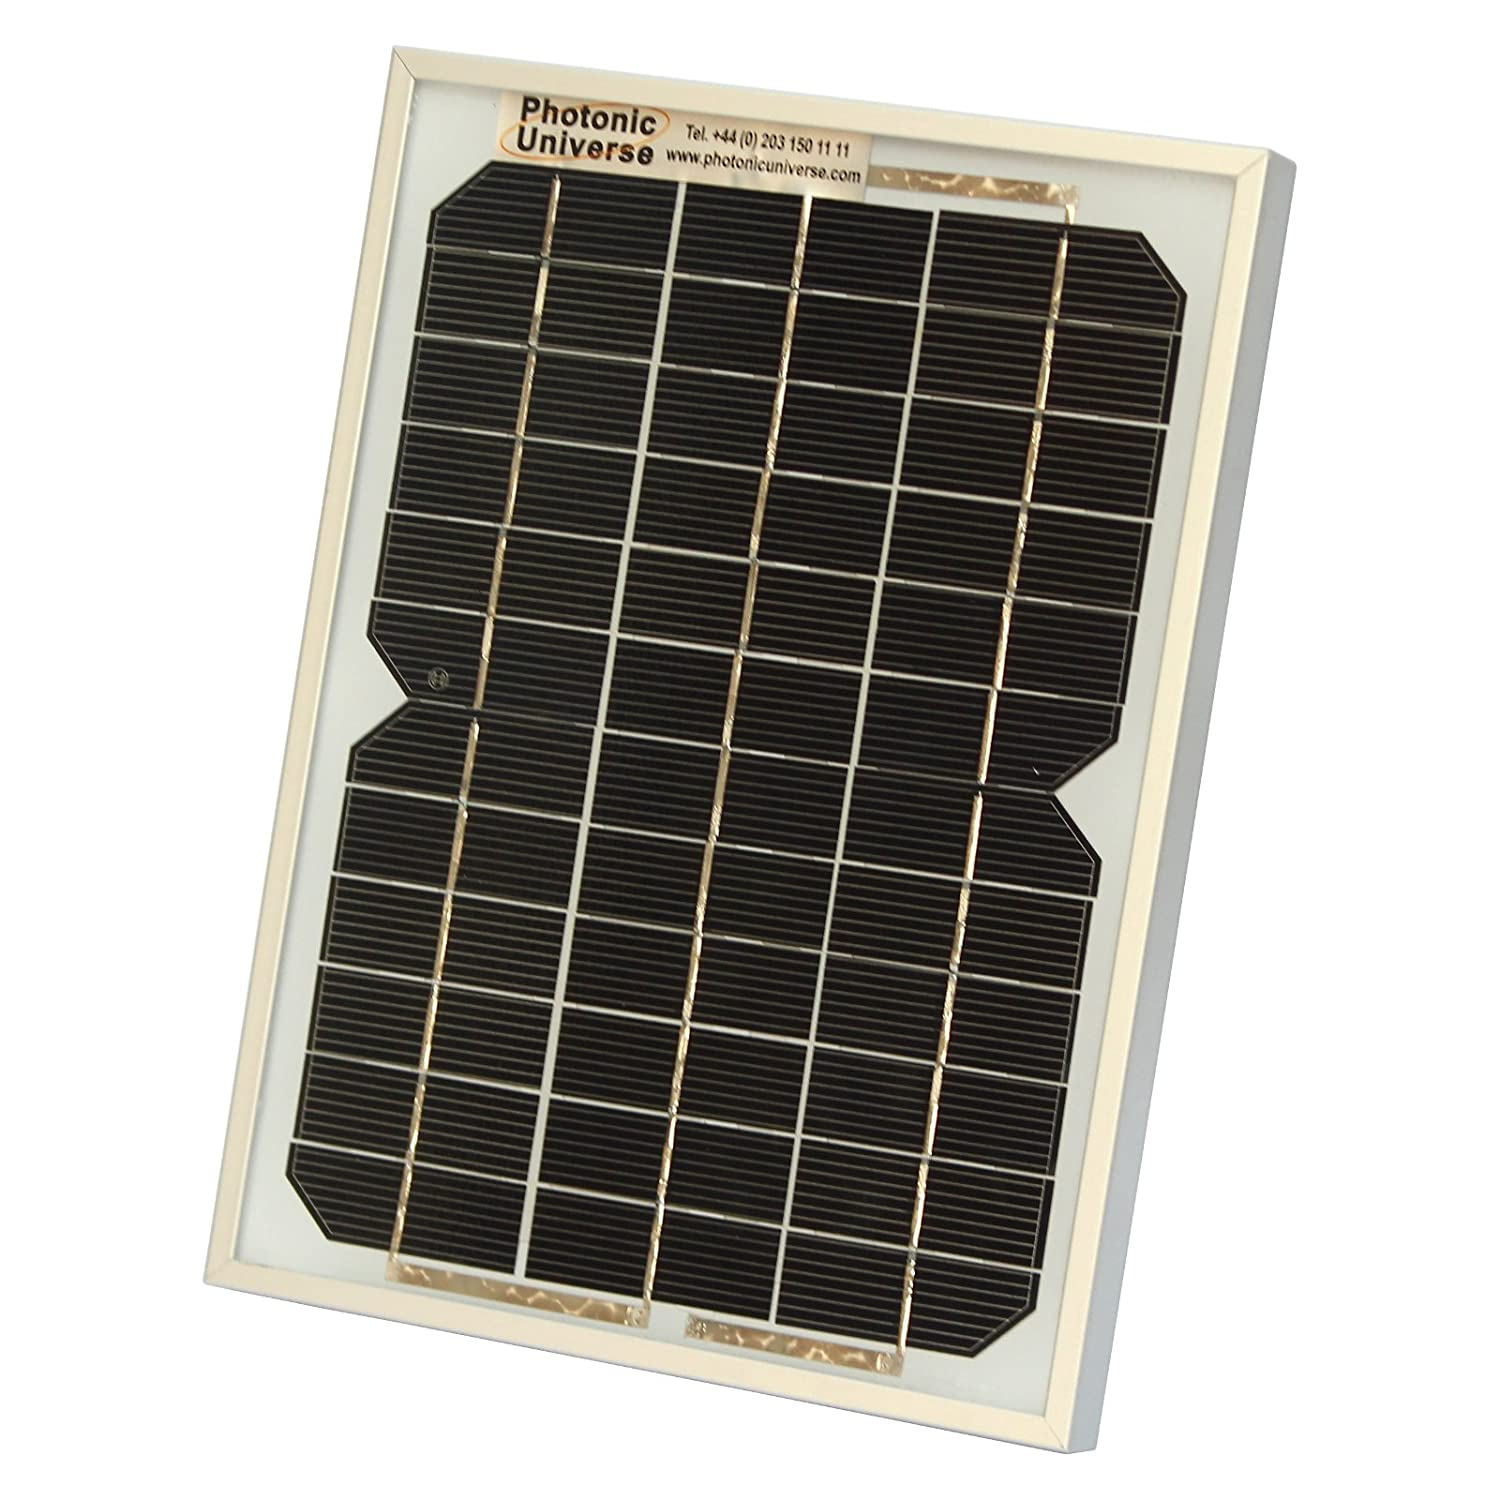 81PZwUXLLvL._SL1500_ 5w 12v photonic universe solar panel for trickle amazon co uk solar panel fuse box at edmiracle.co